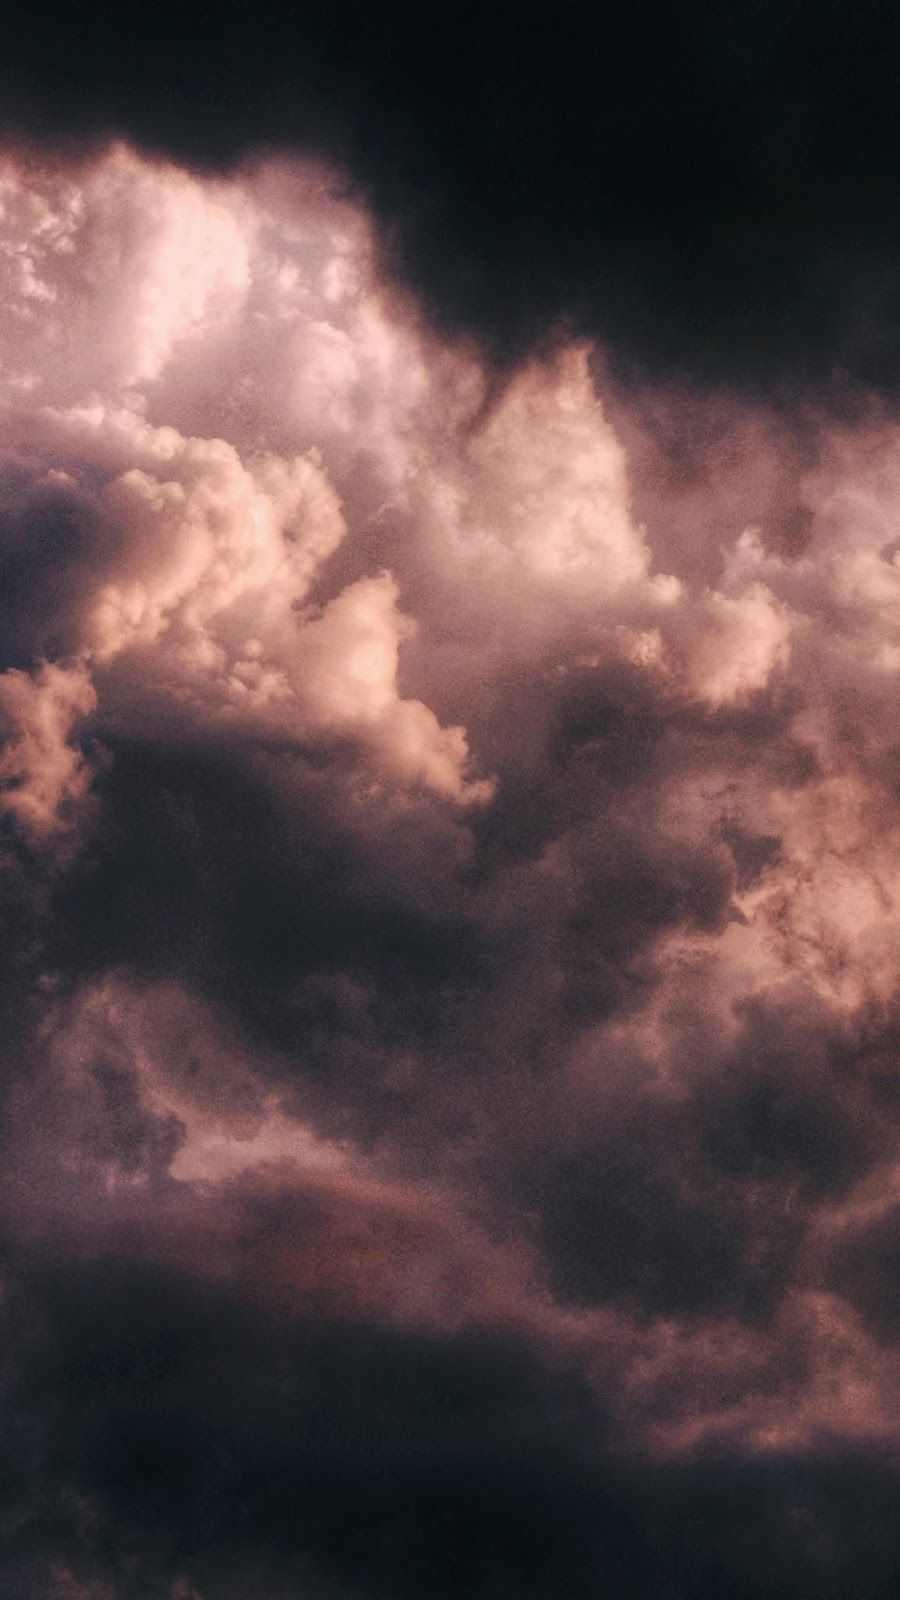 Pin By Boo On Aesthetics Clouds Pretty Wallpaper Iphone Black